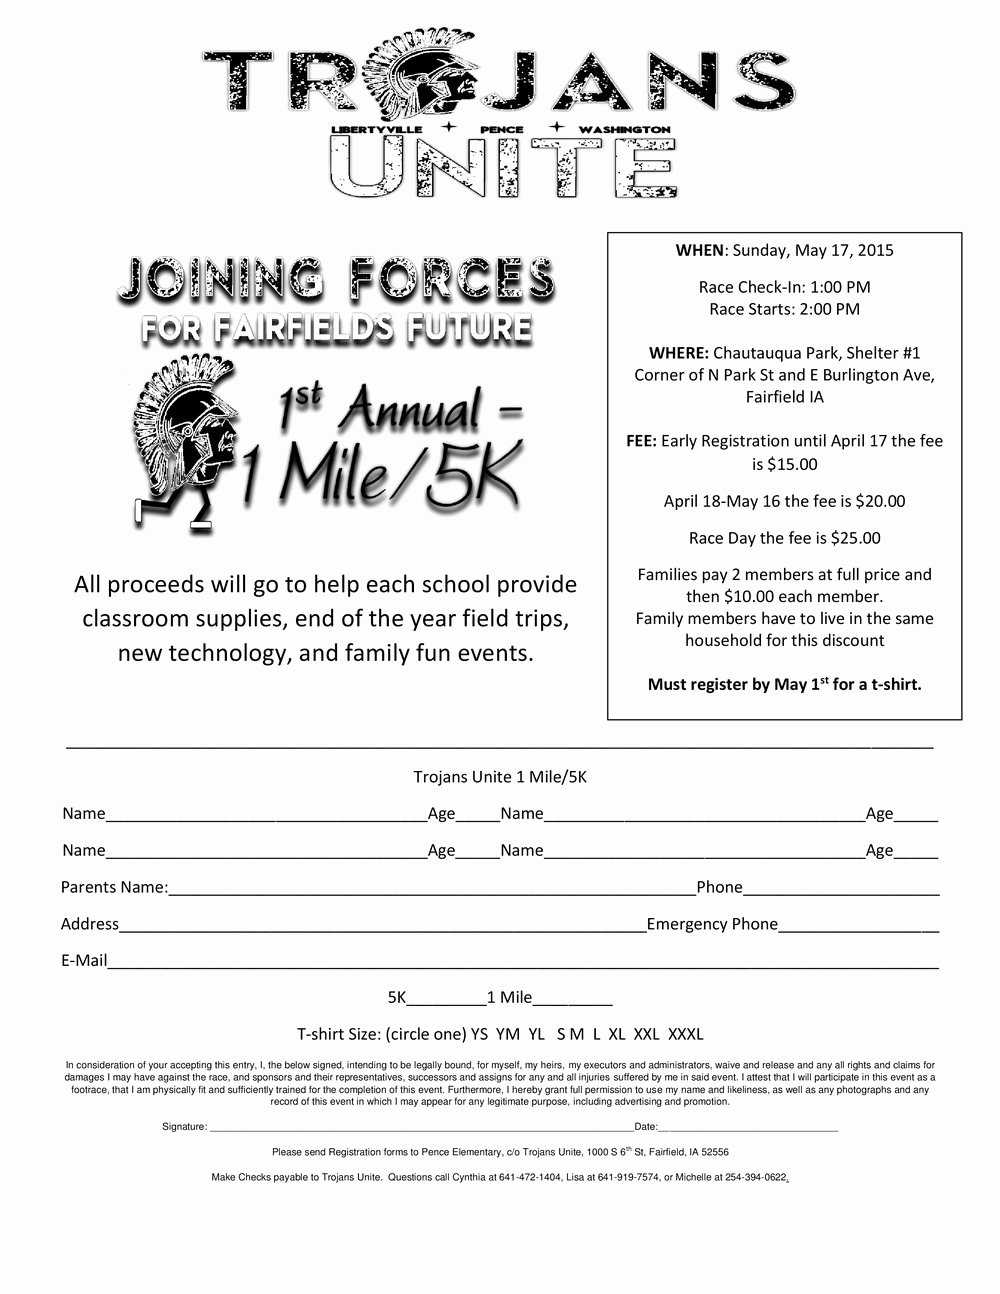 5k Race Registration form Template Elegant Race Bib Template Templates Mtqxoty